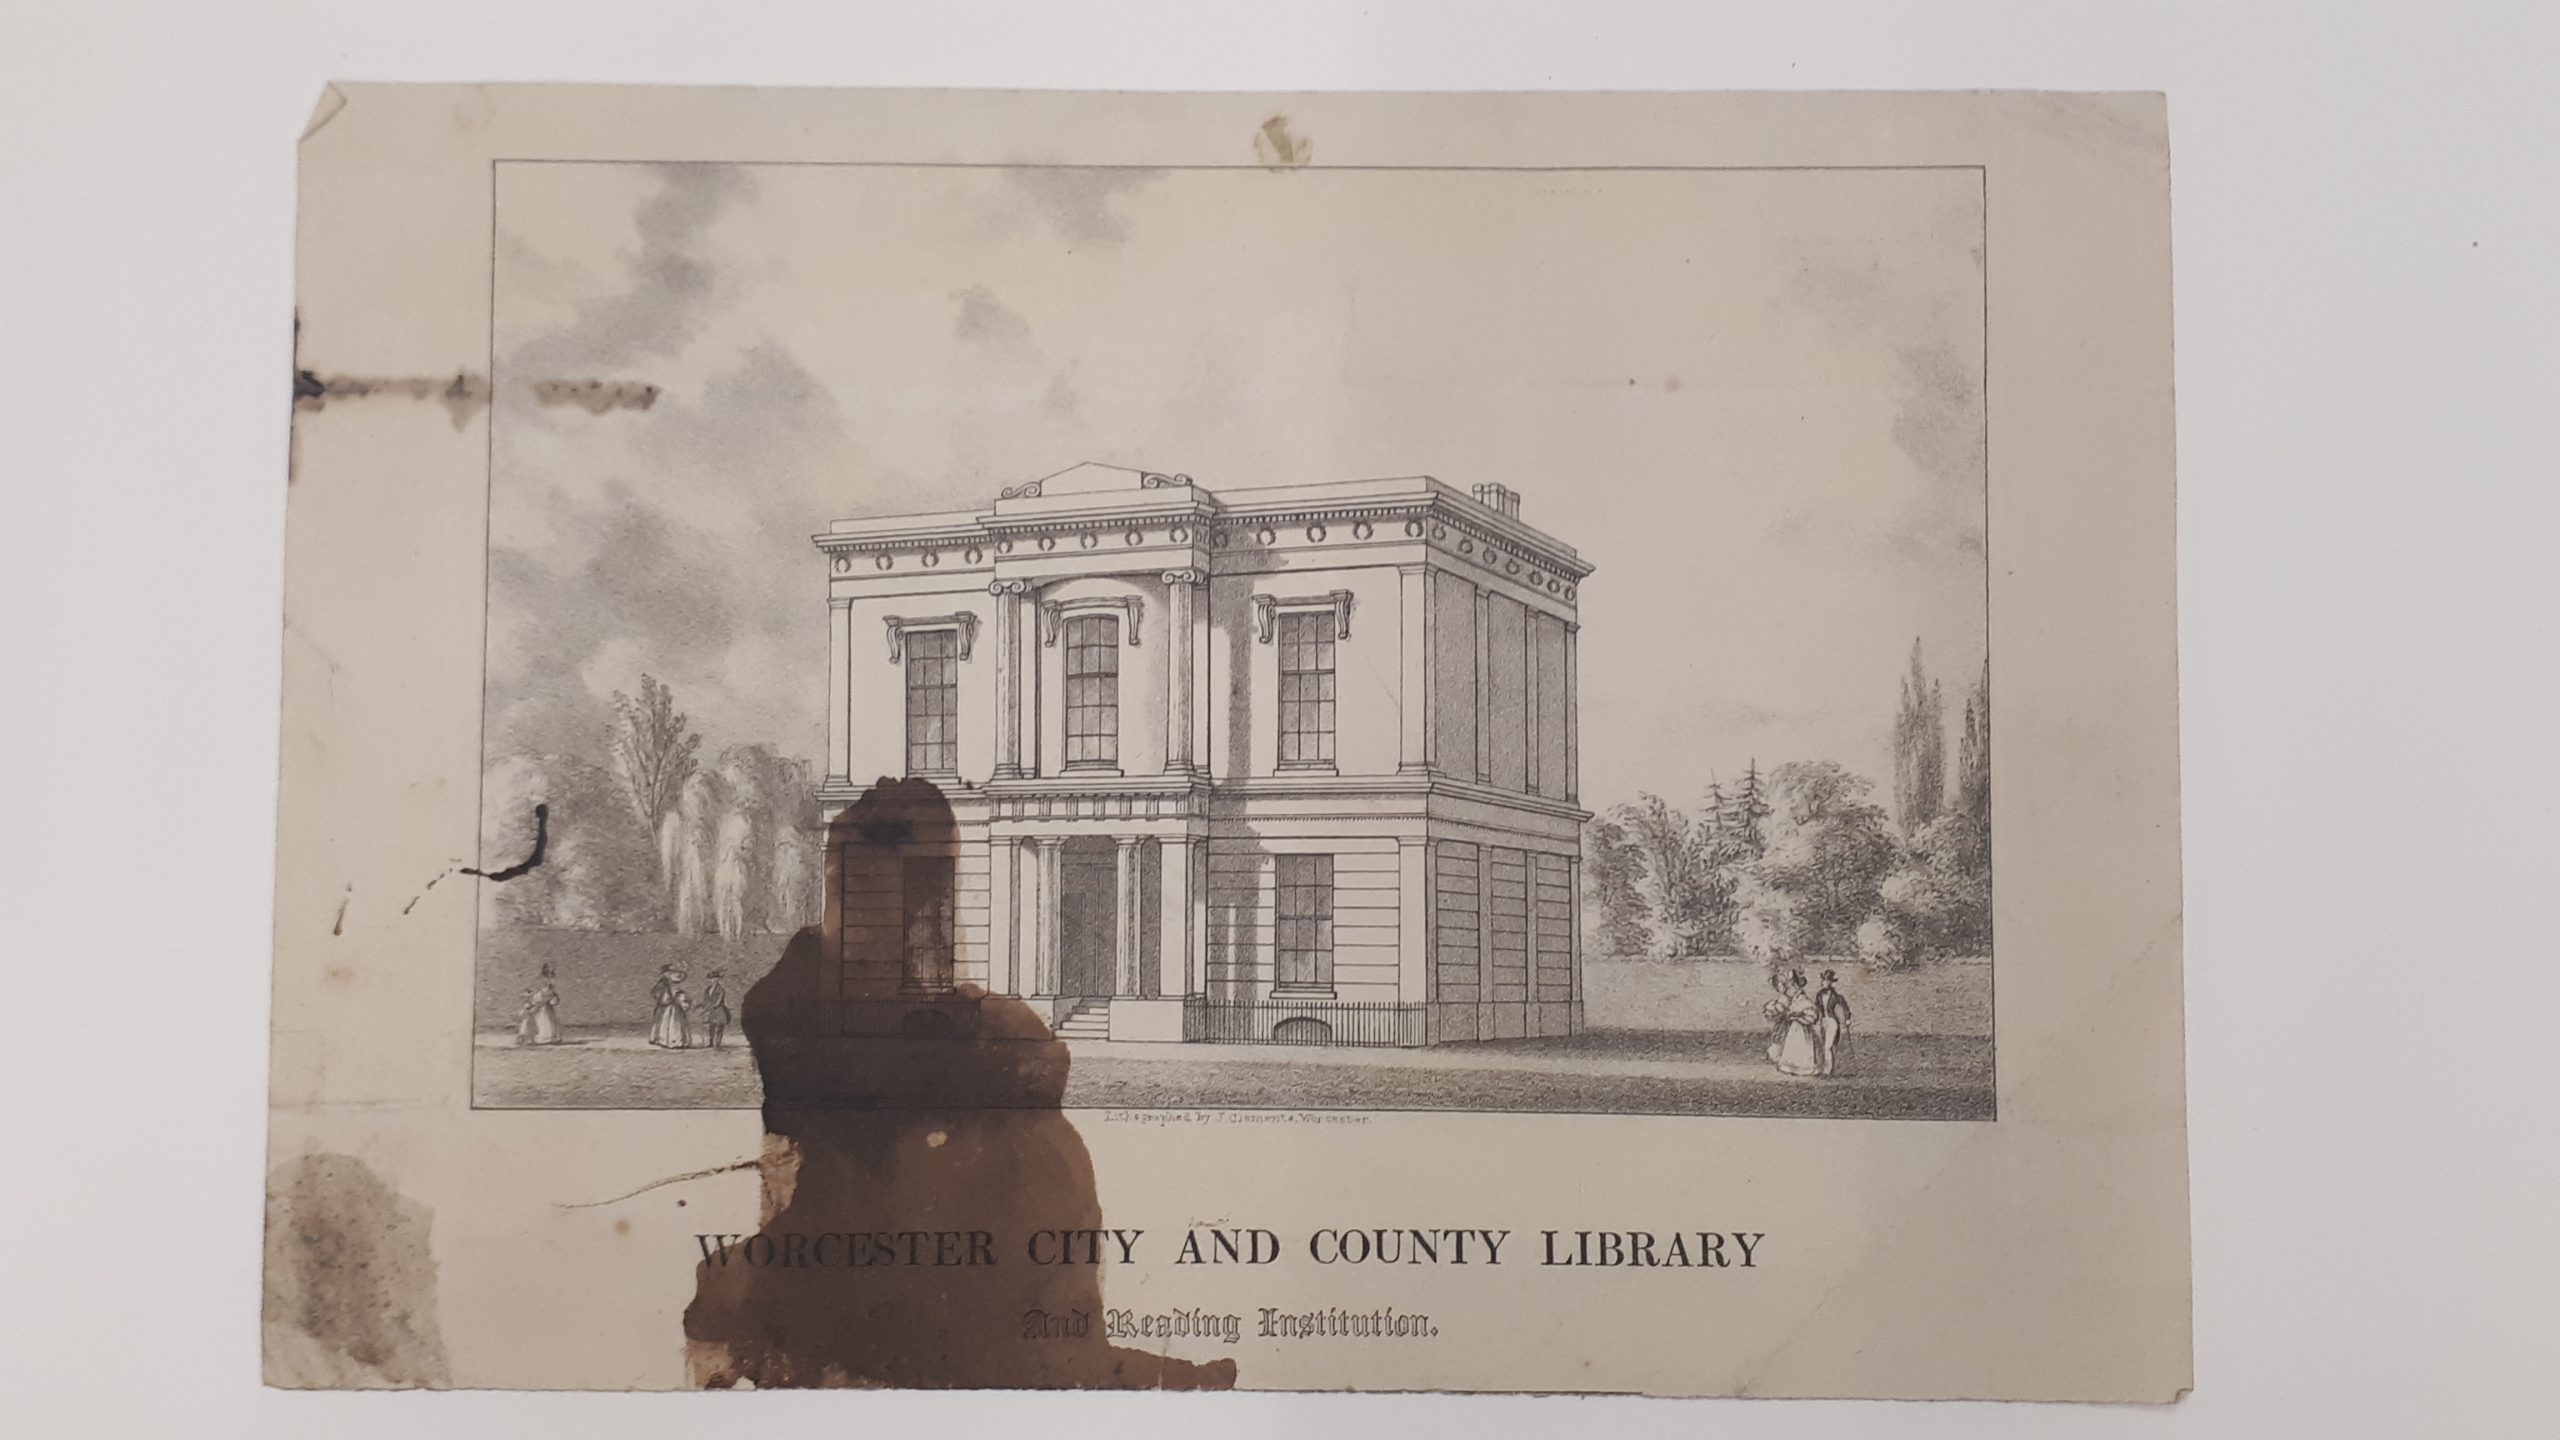 Lithograph of Worcester City Library & home of Worcestershire Literary & Scientific Institute founded on 12th January 1829